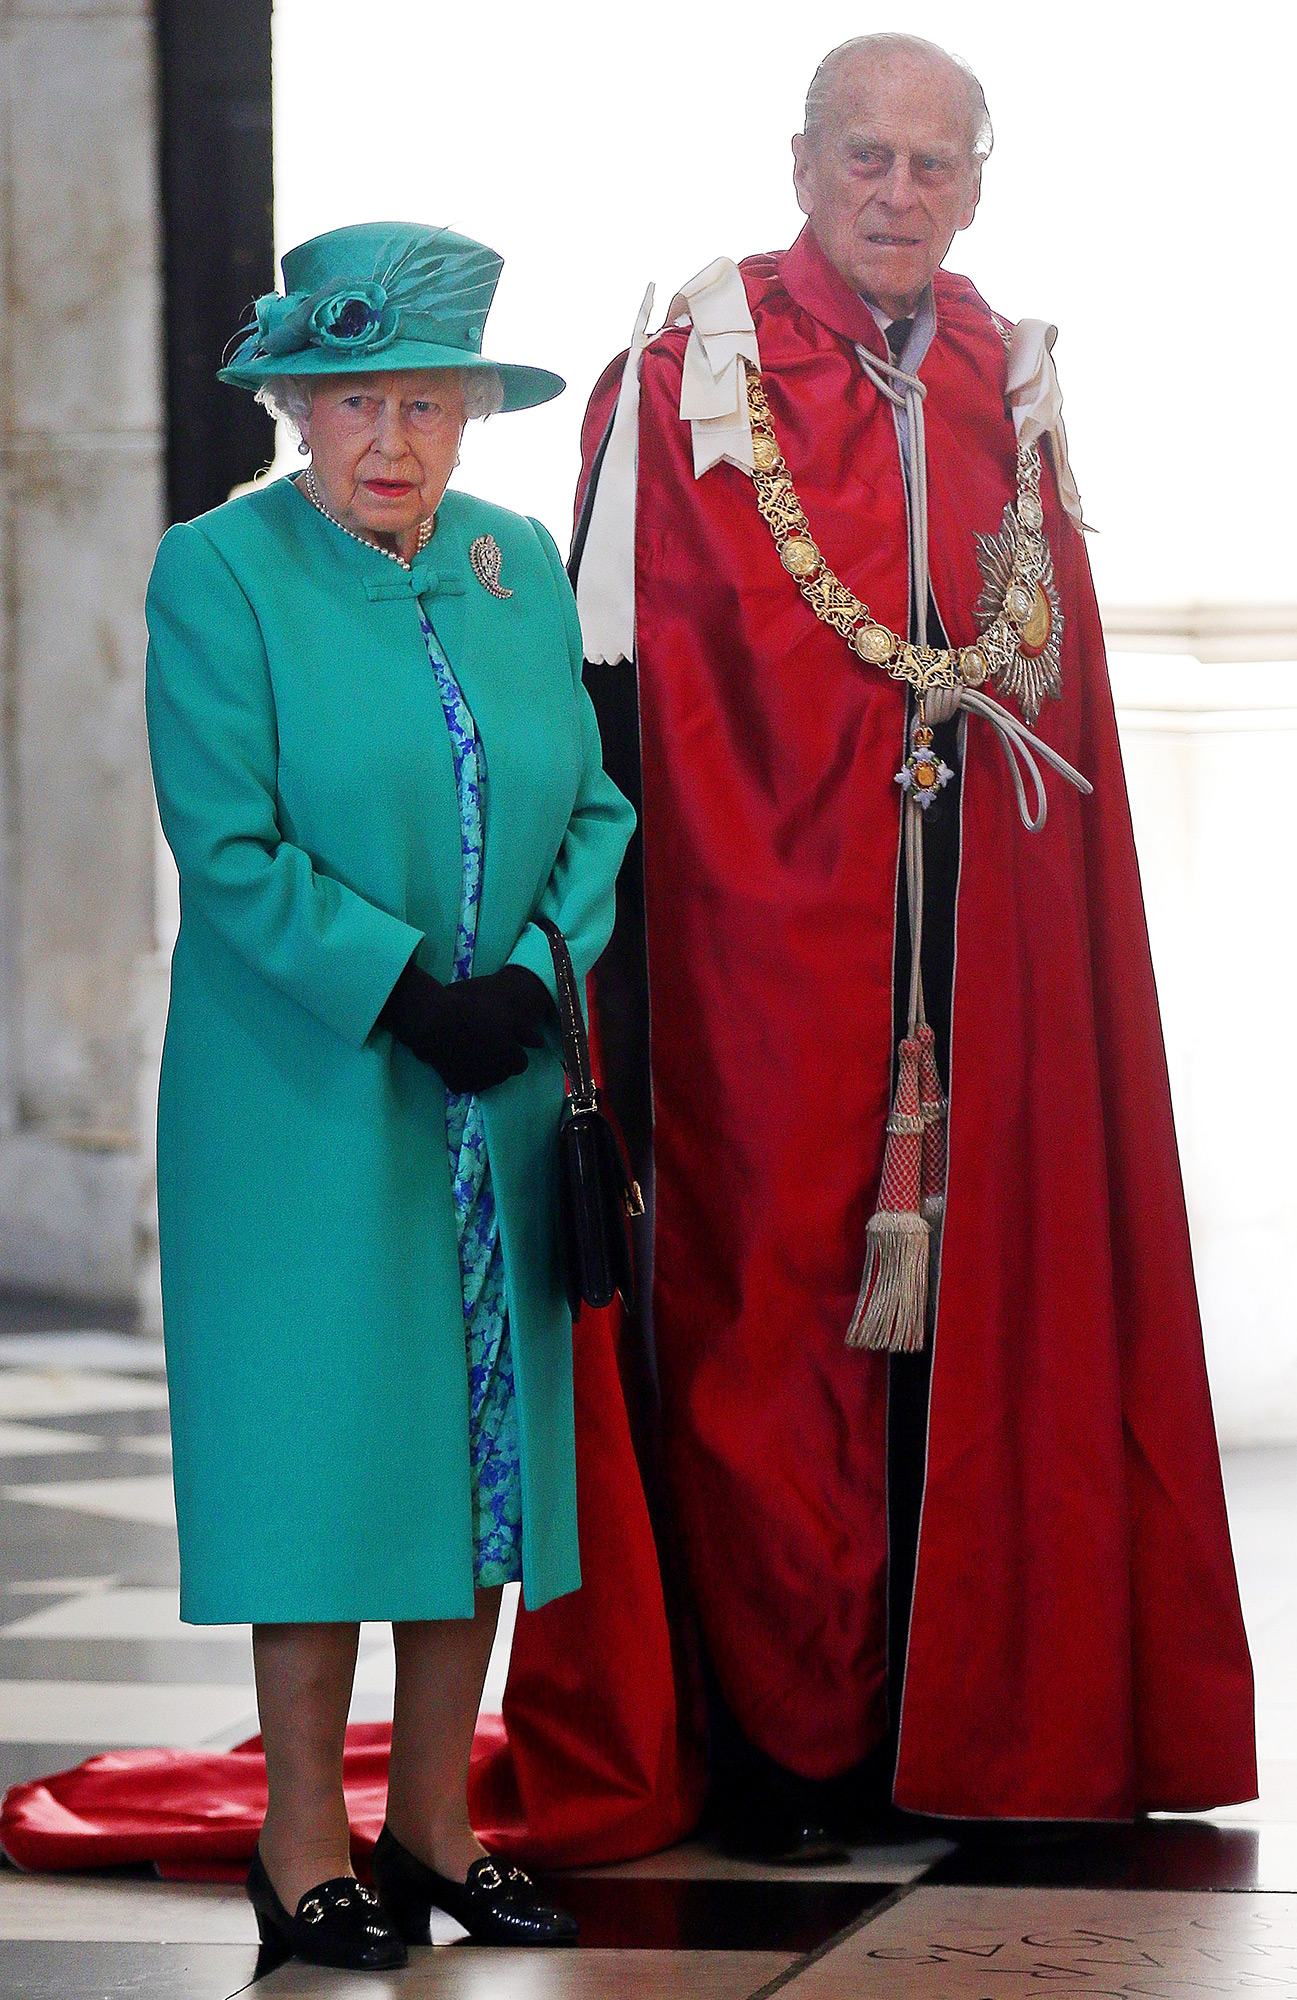 The Queen And The Duke of Edinburgh Attend Service To Mark The Centenary Of The OBE